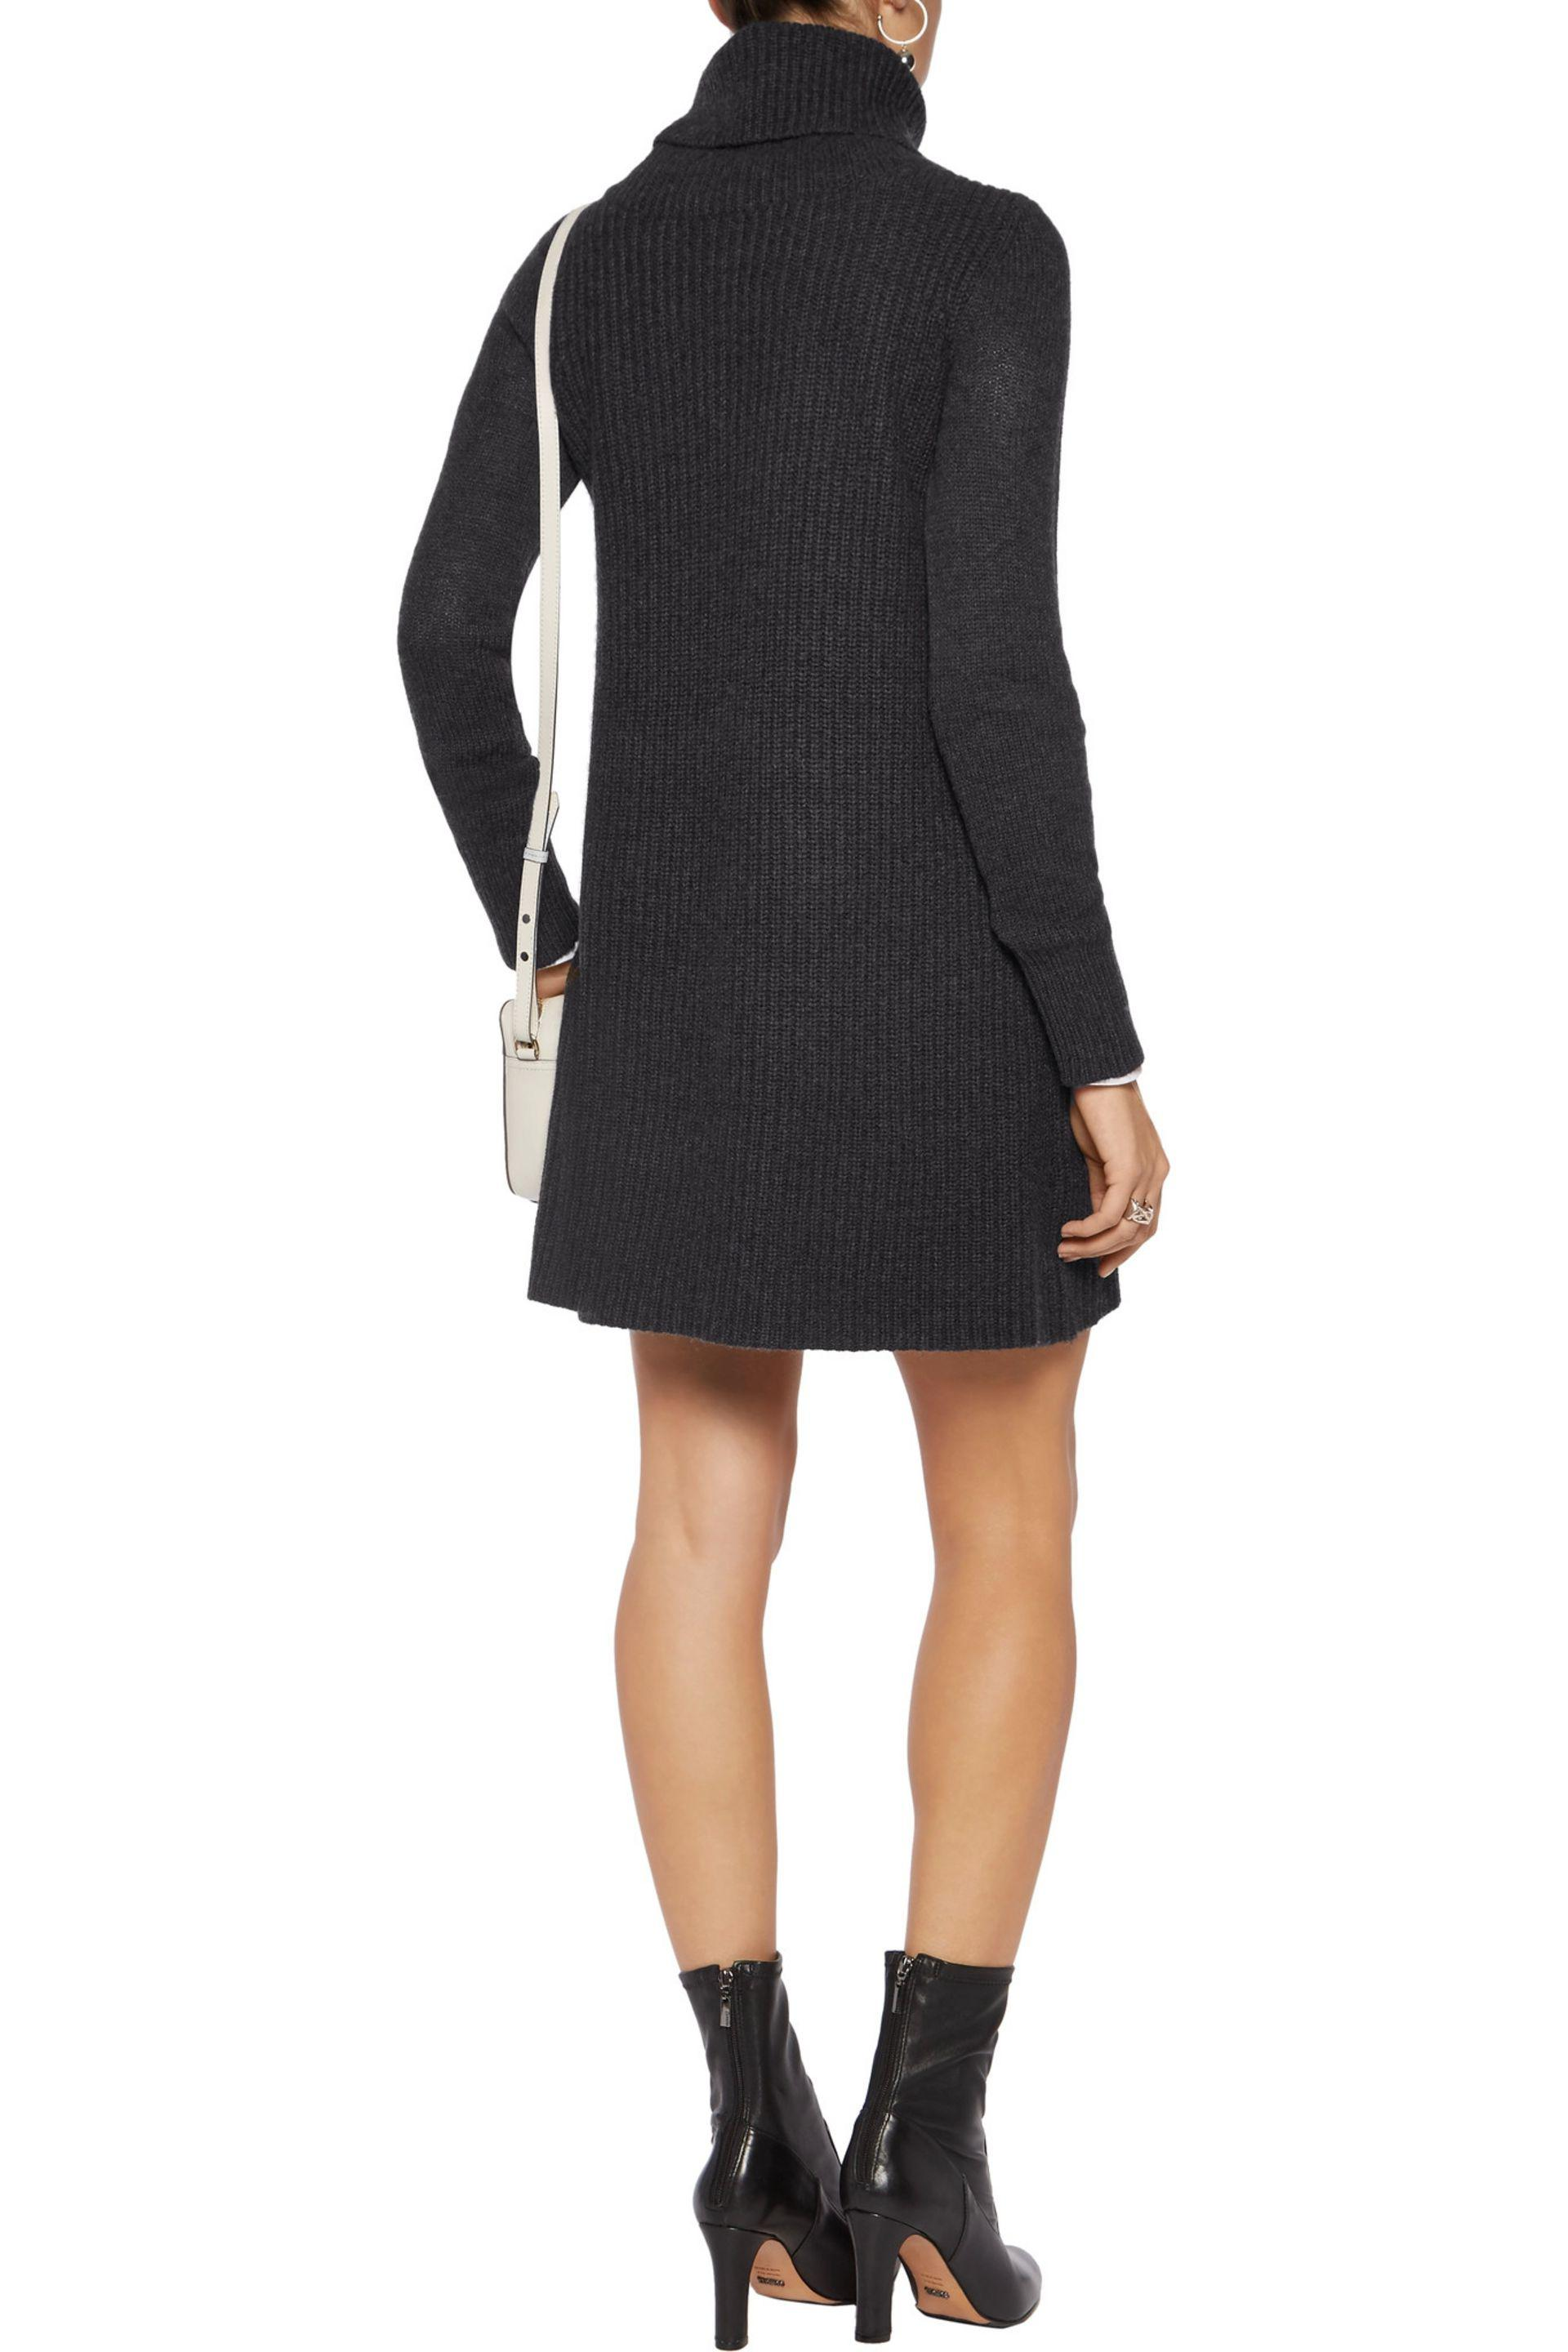 Madeleine Thompson Woman Andros Wool And Cashmere-blend Turtleneck Dress Dark Gray Size XL Madeleine Thompson Affordable Sale Online Discount Low Price Up To Date Good Selling For Sale OYKoYUR3i